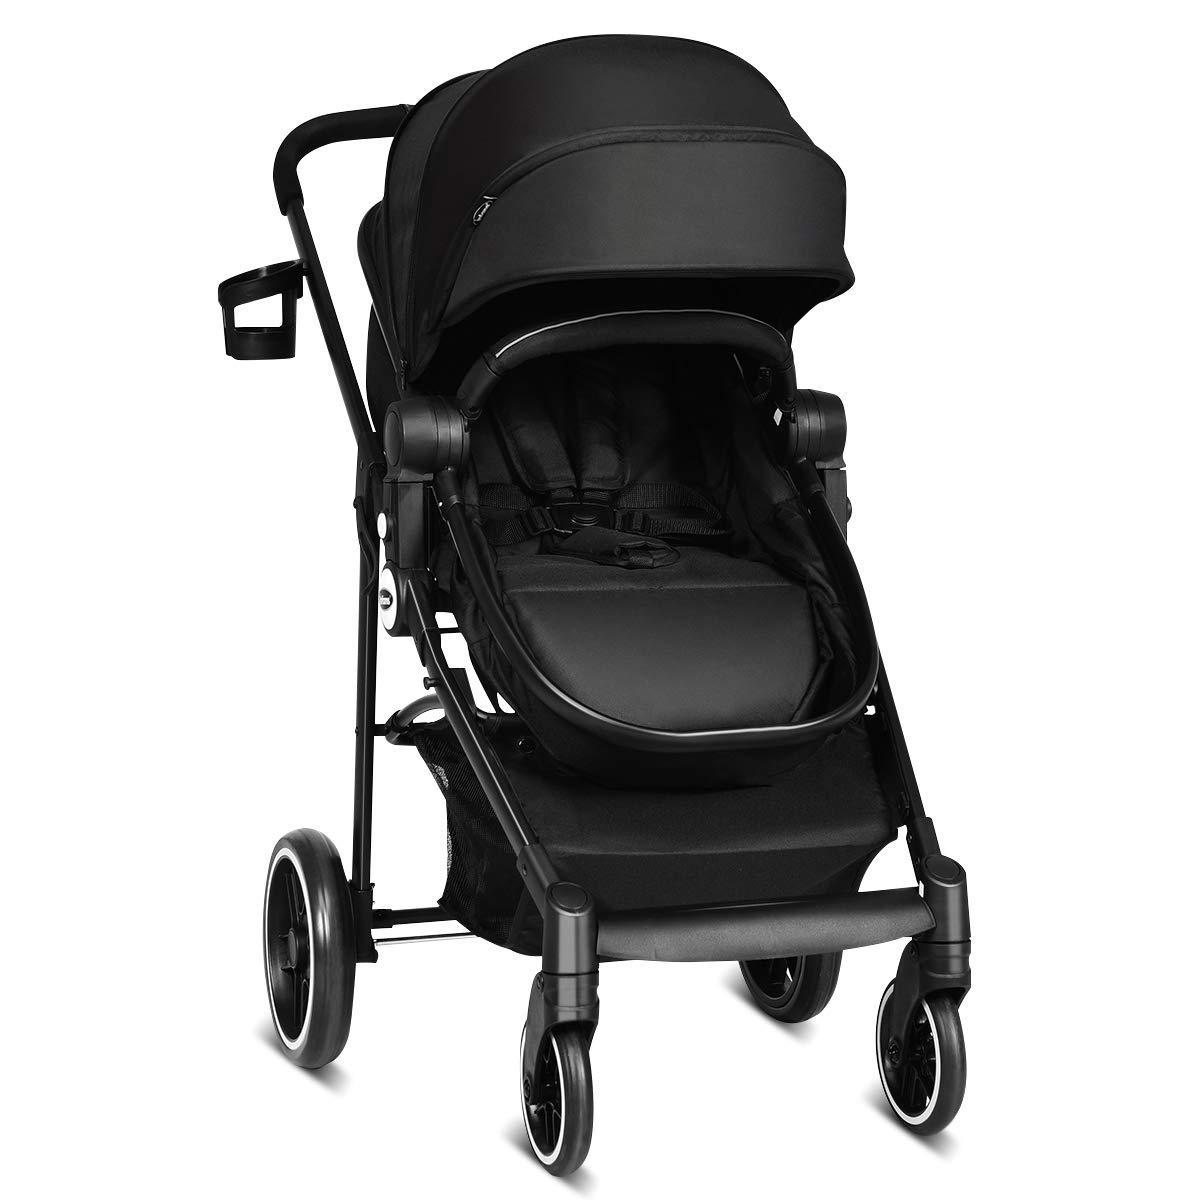 INFANS 2 in 1 Baby Stroller, High Landscape Infant Stroller Reversible Bassinet Pram, Foldable Pushchair with Adjustable Canopy, Storage Basket, Cup Holder, Suspension Wheels Black